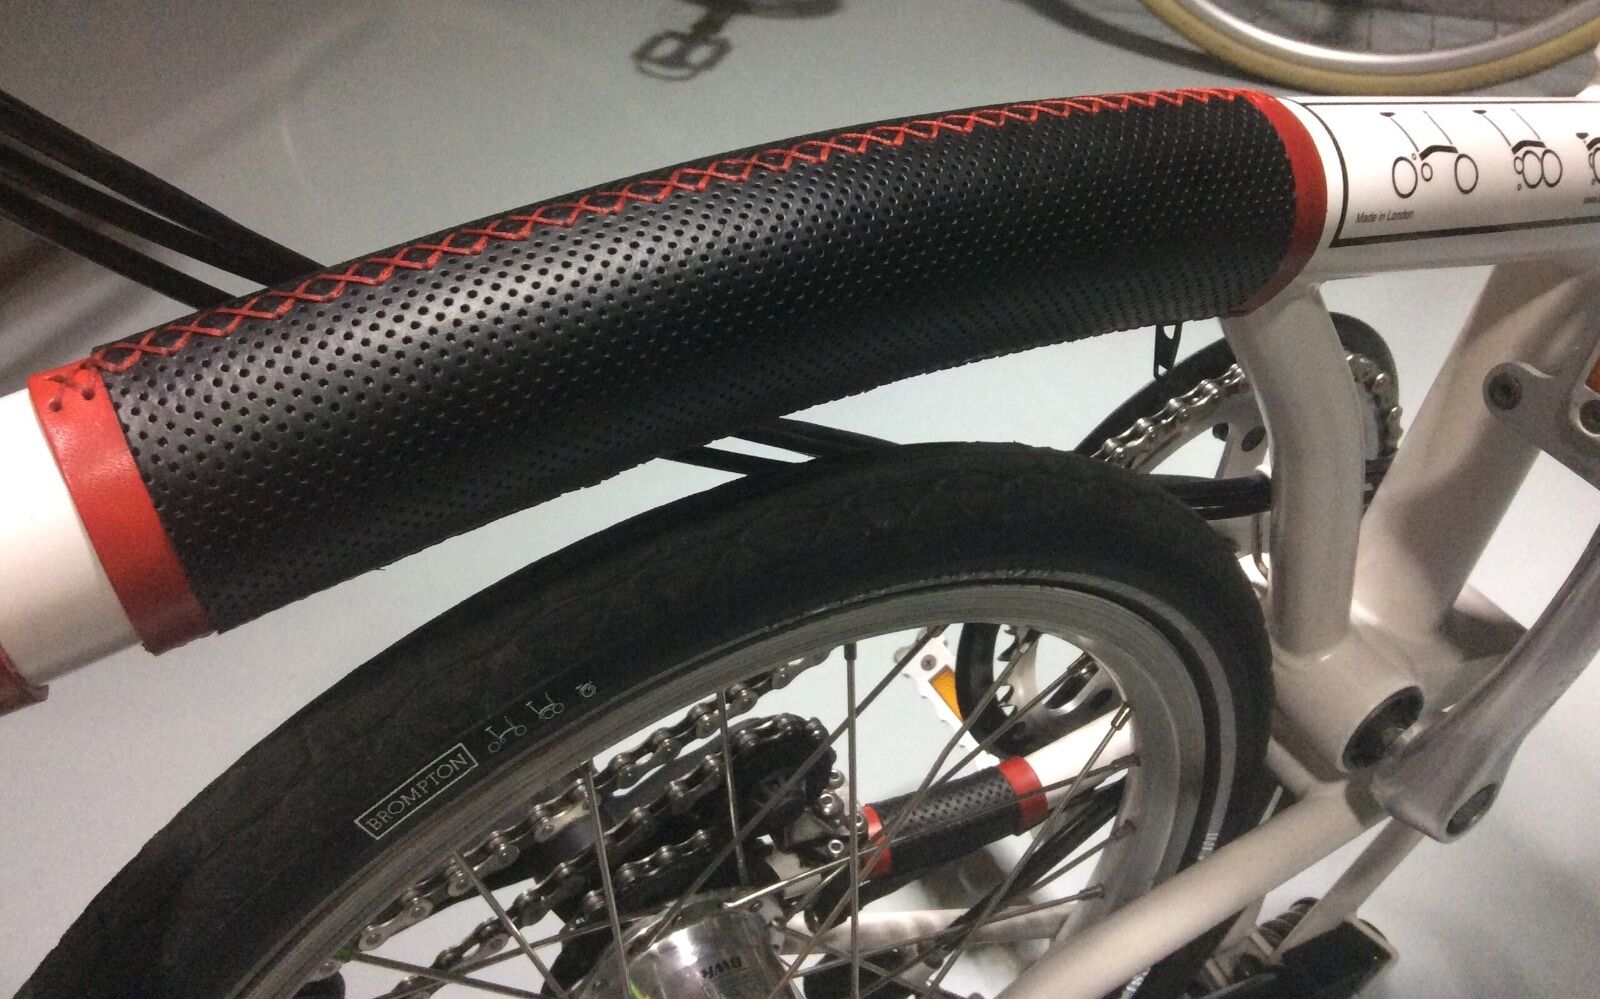 Genueine perforate leather frame predection for Brompton  Zipper install.